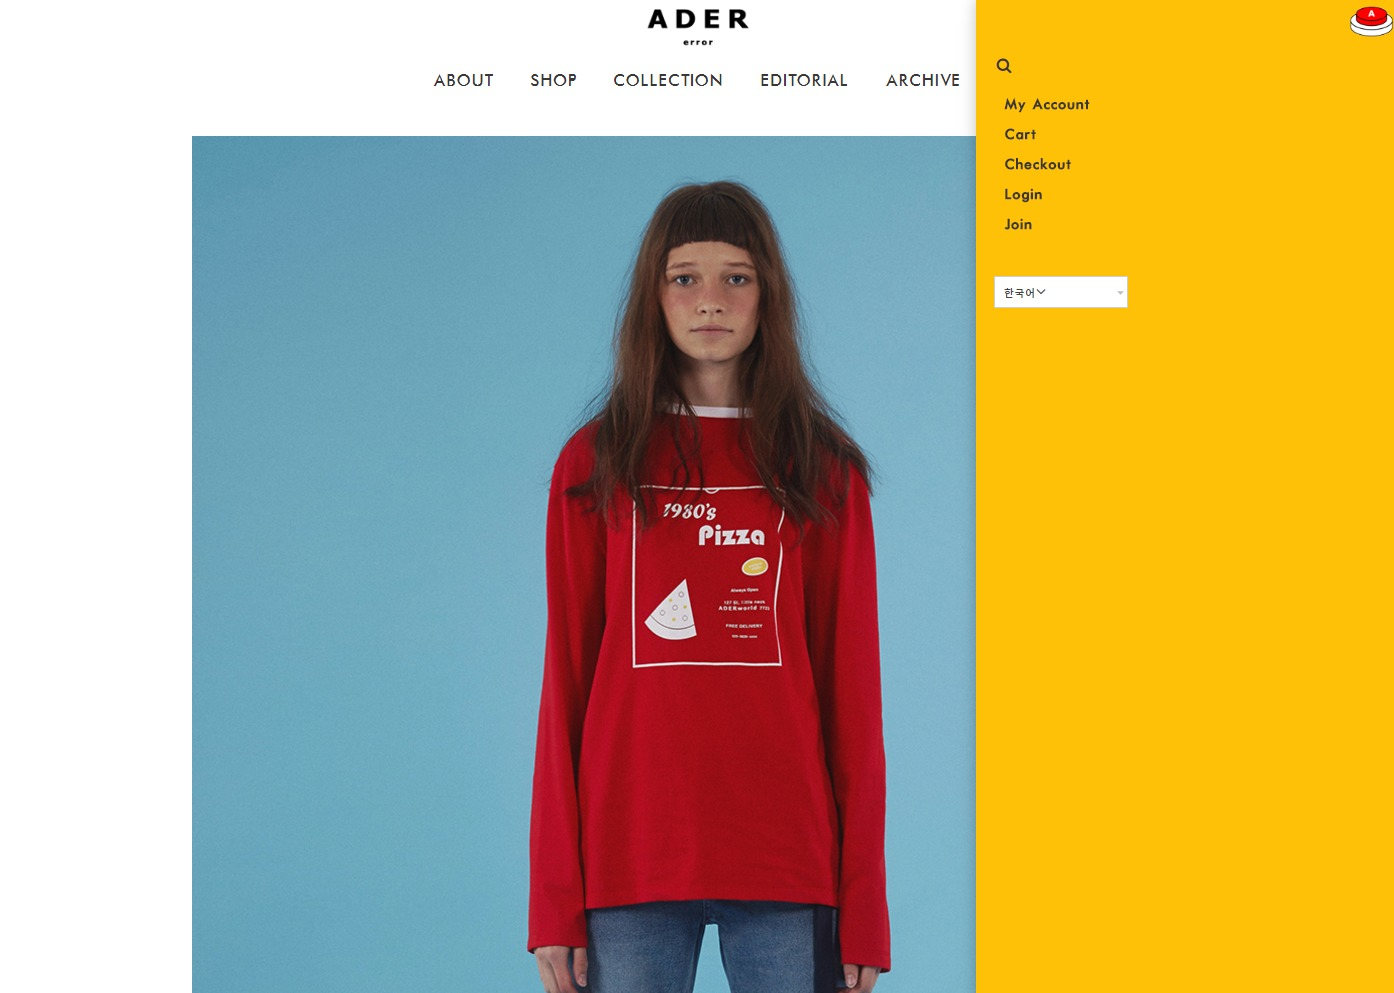 Pizza long sleeve t shirts red   Ader error3